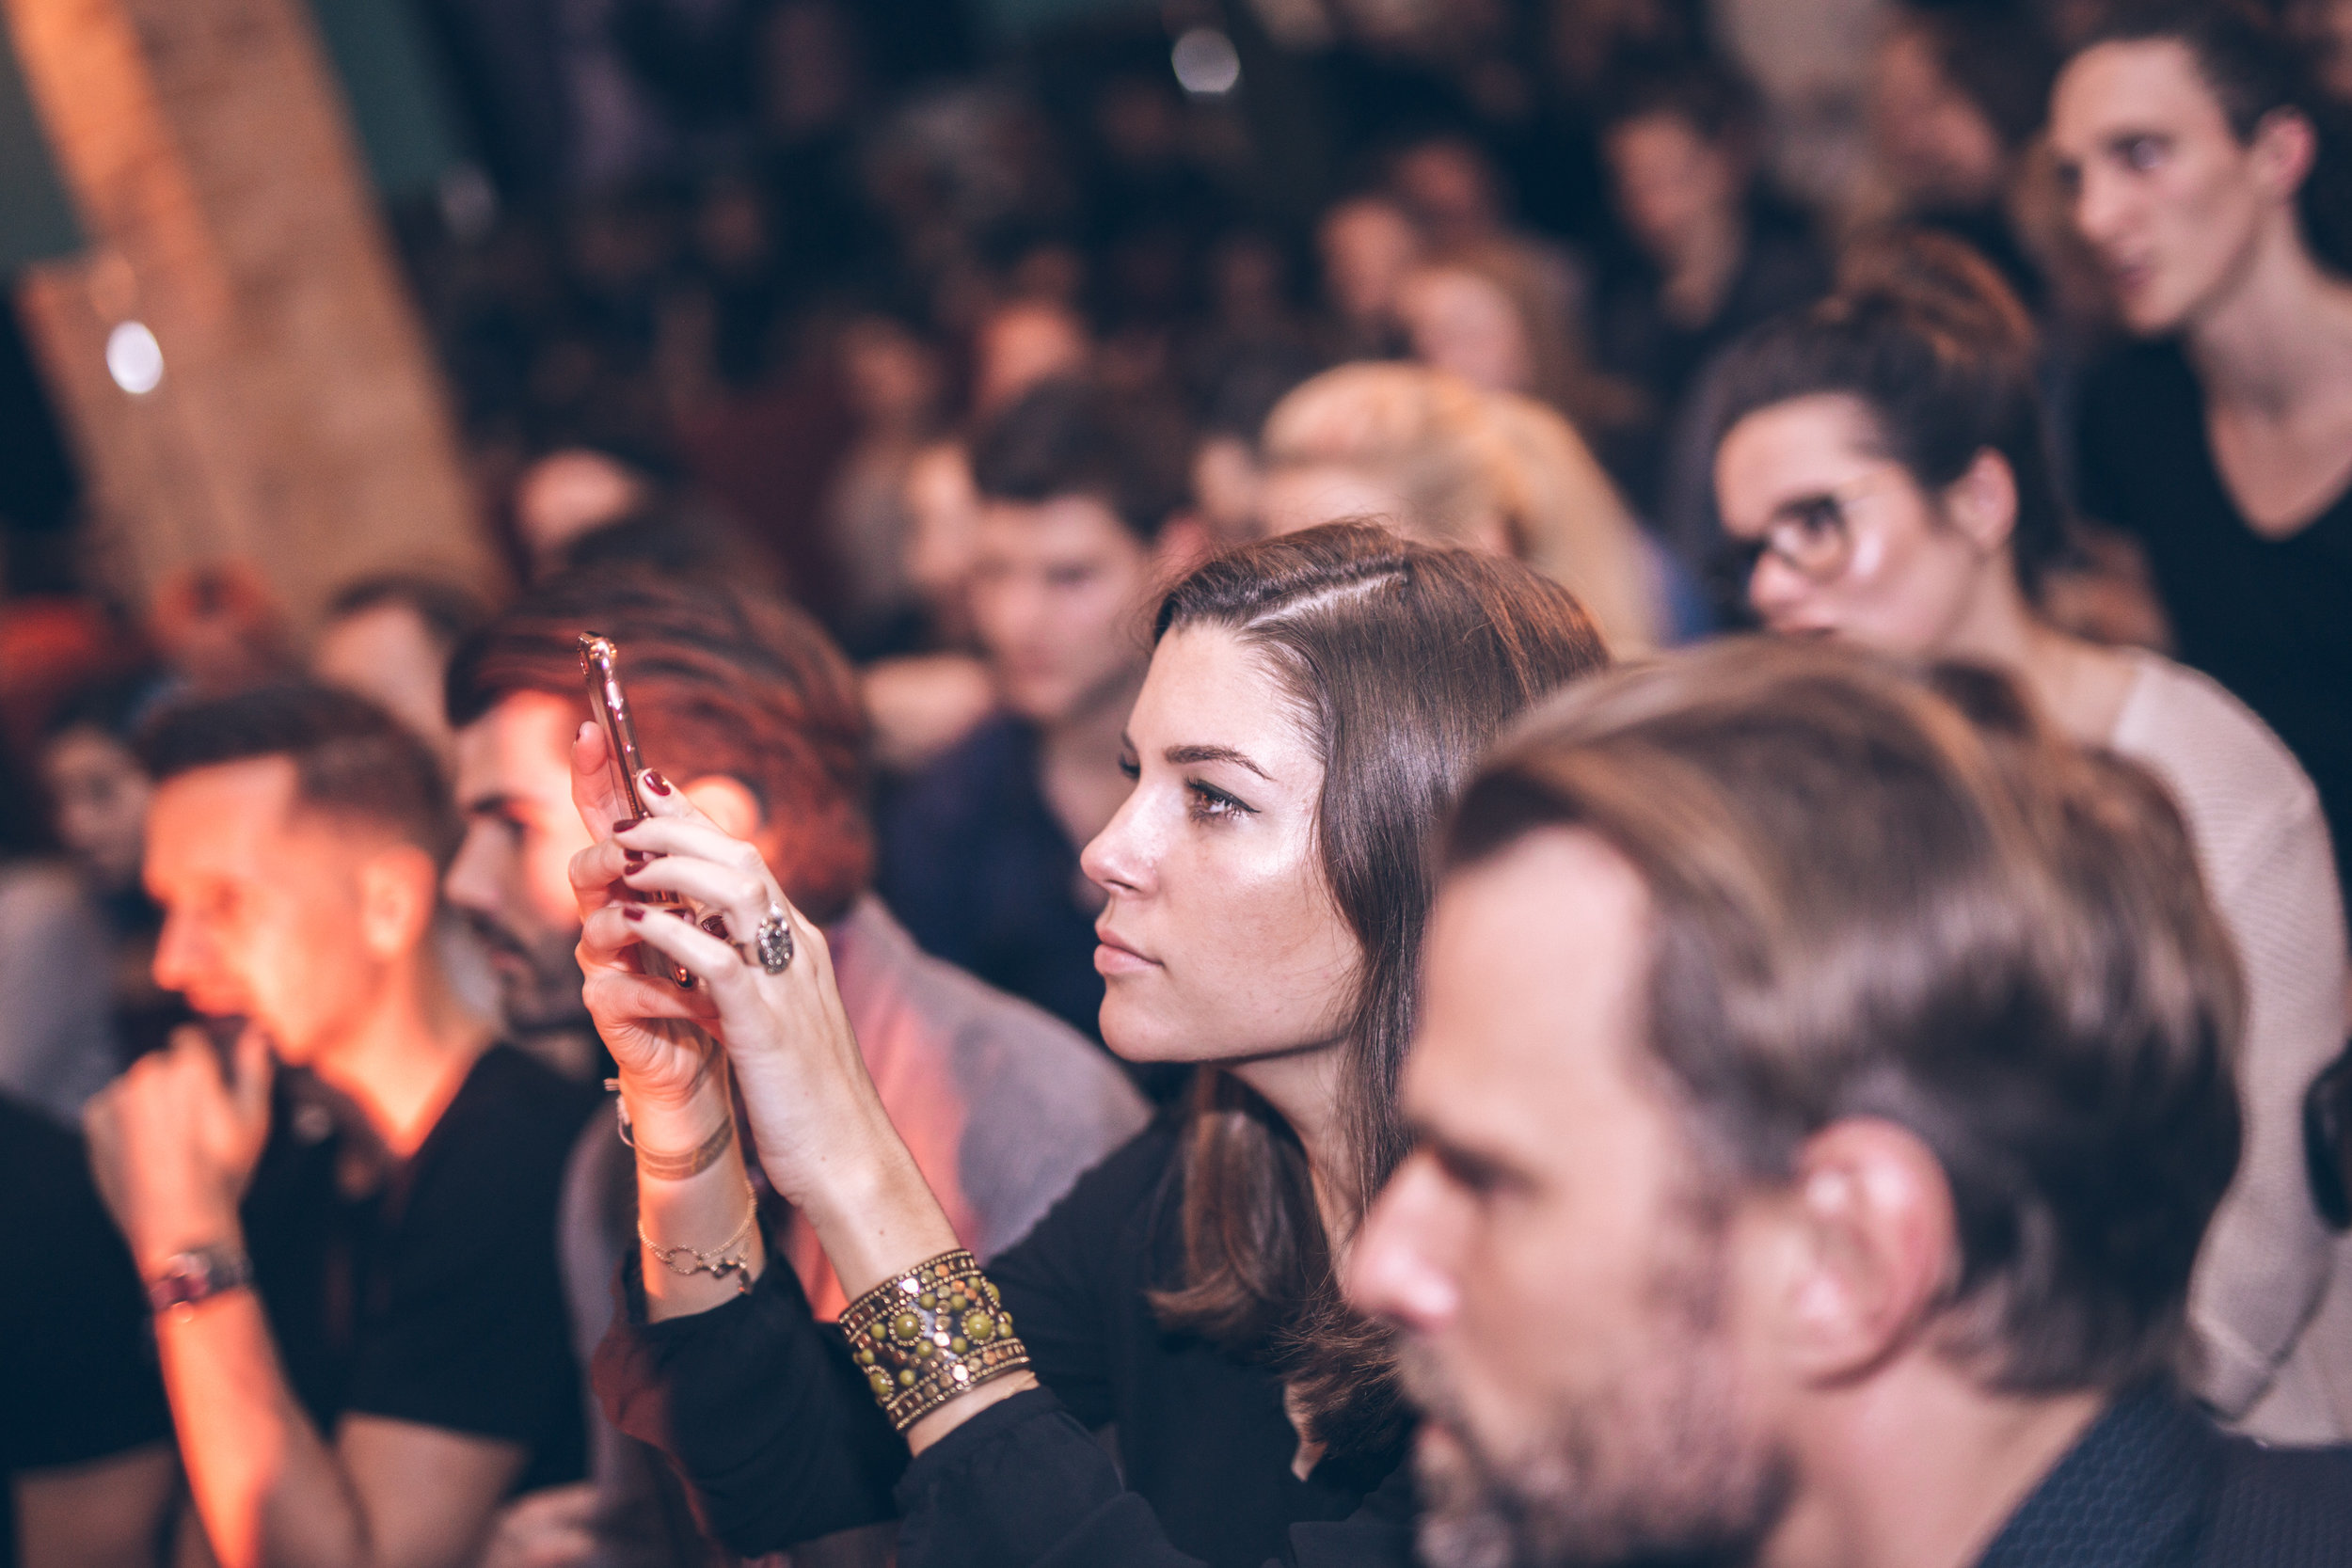 PrivateSoulFoodConcert-18.12.2016-Offenblende-208.jpg